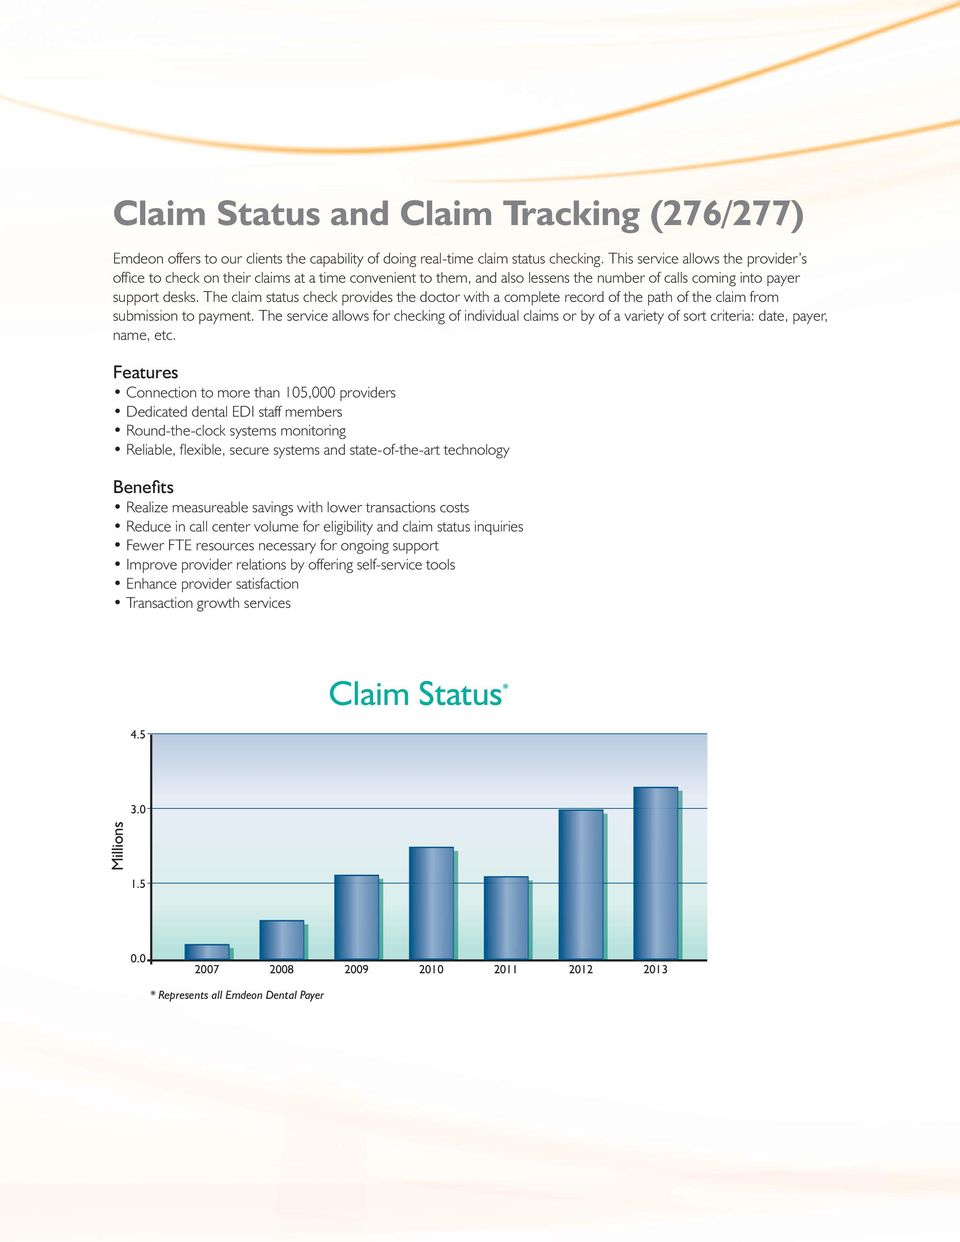 The claim status check provides the doctor with a complete record of the path of the claim from submission to payment.